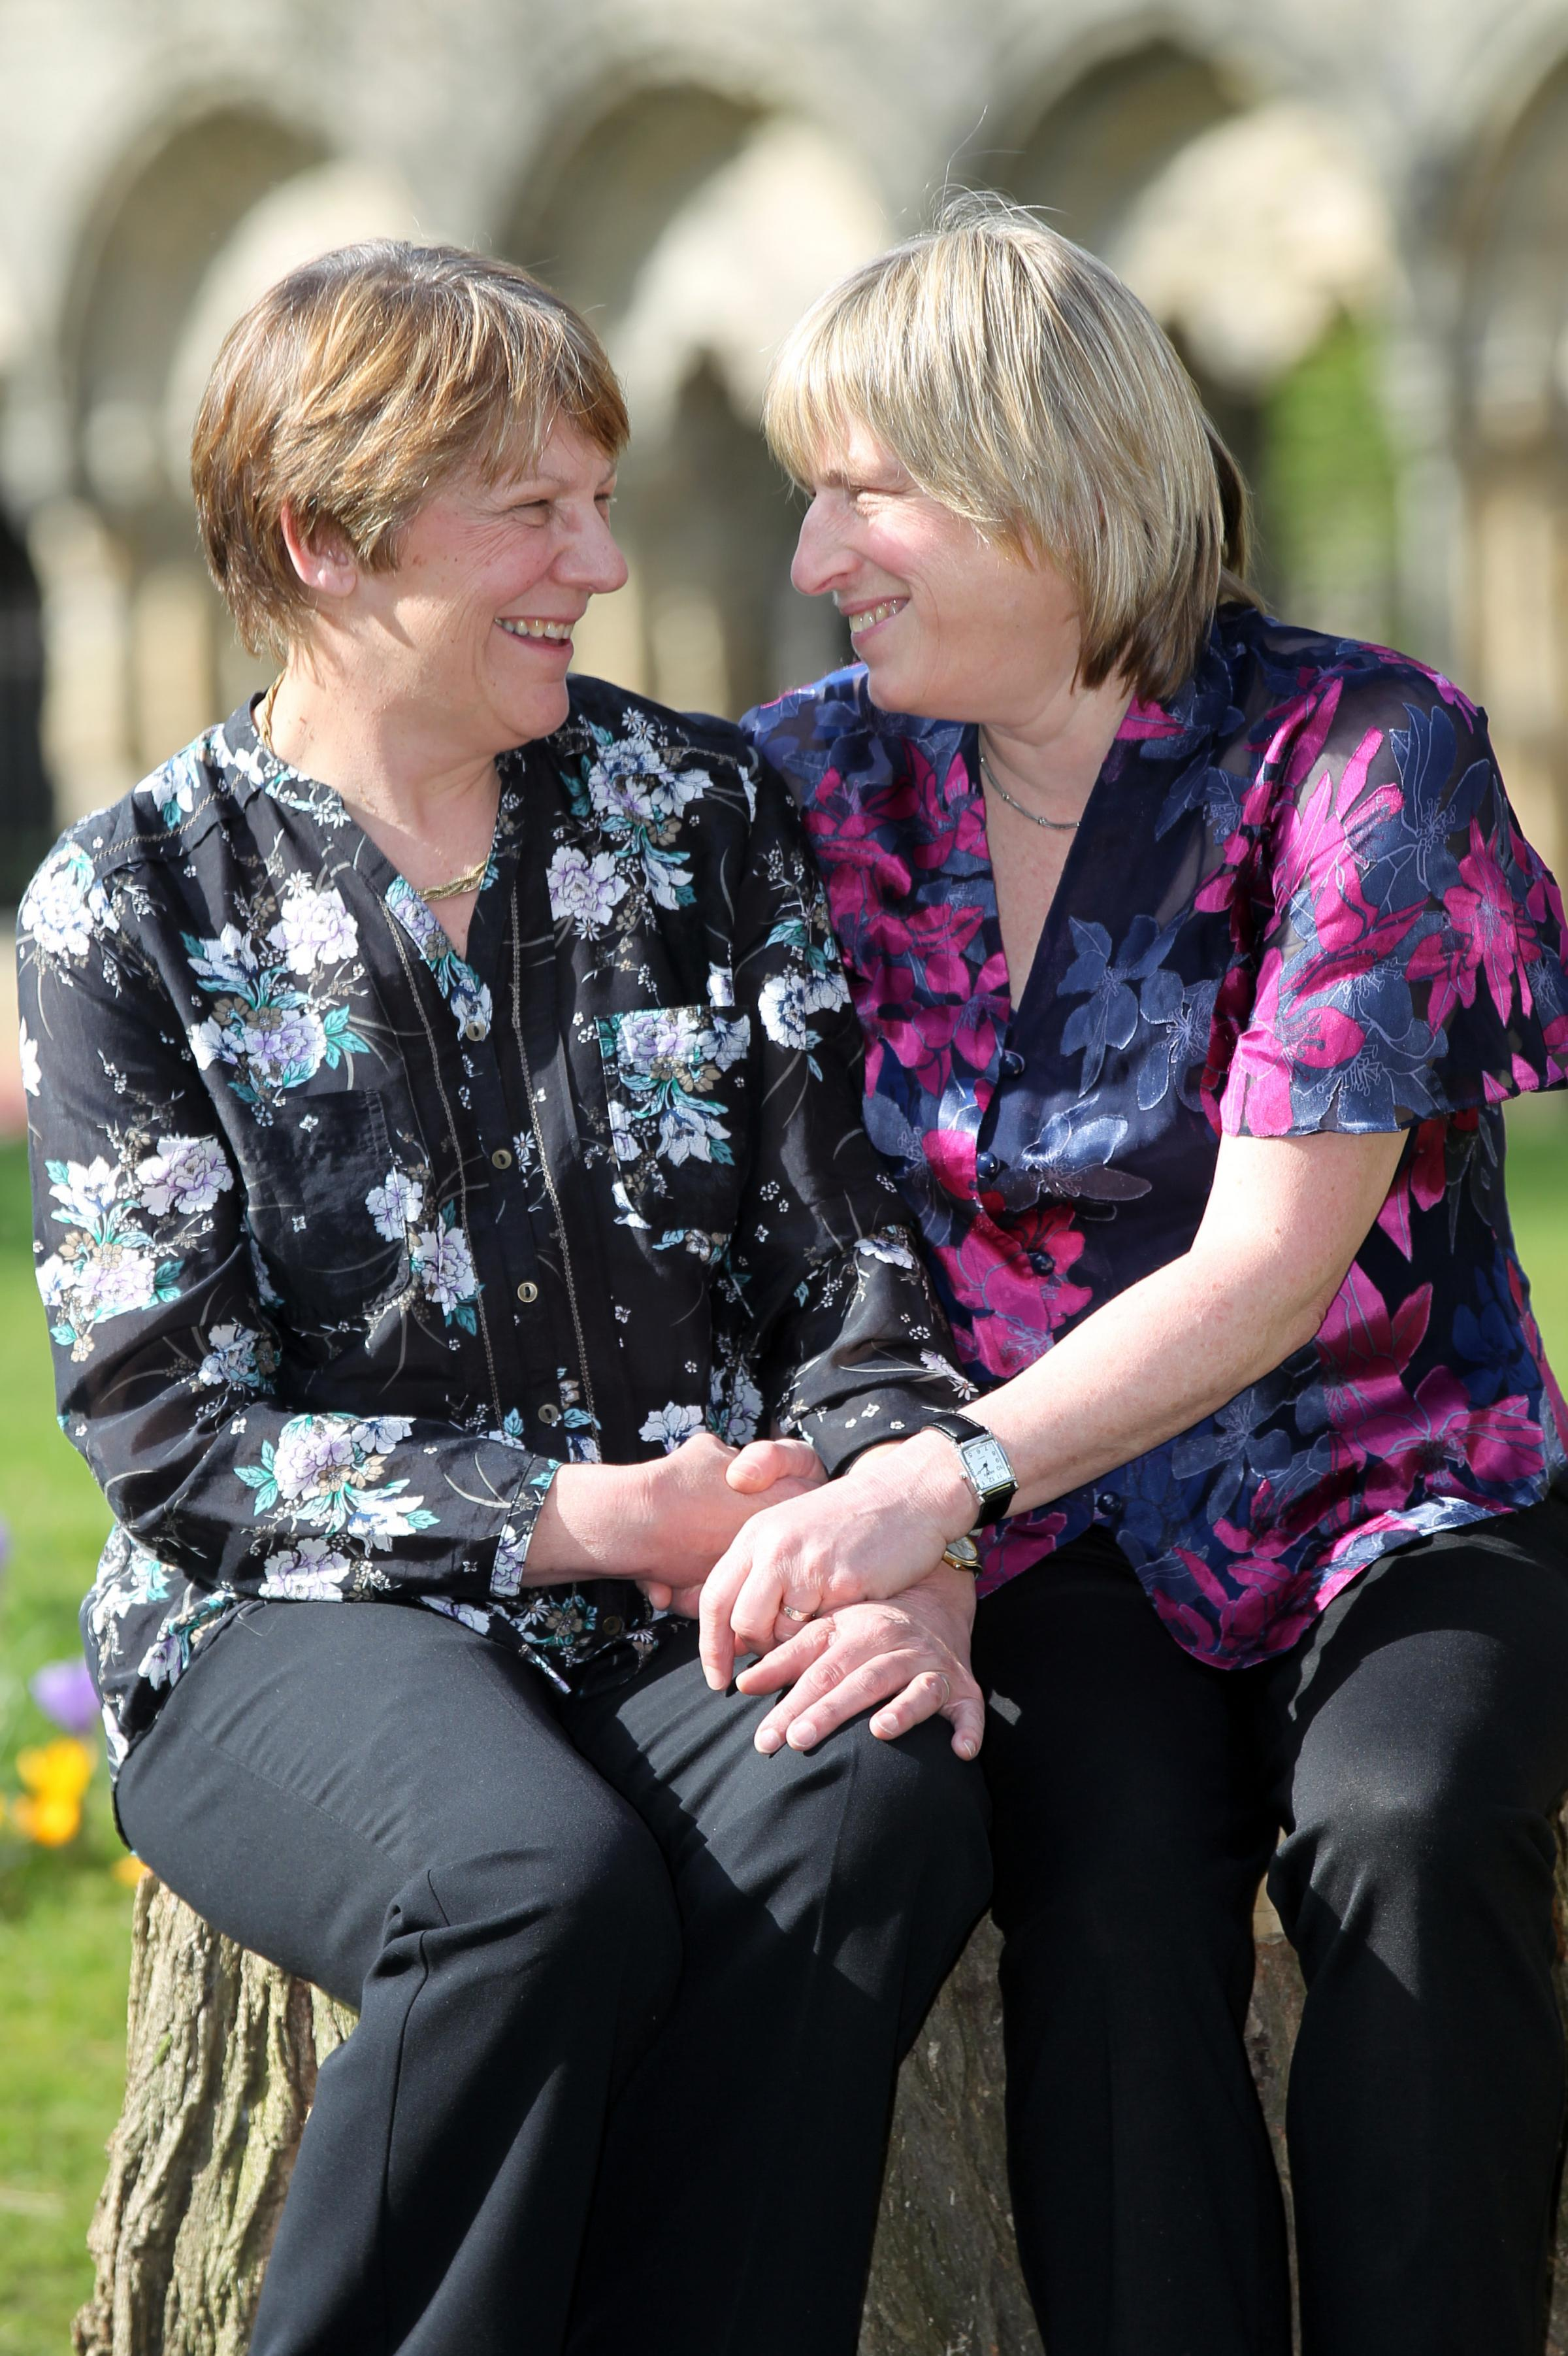 Marriage now legally recognised for lesbian couple